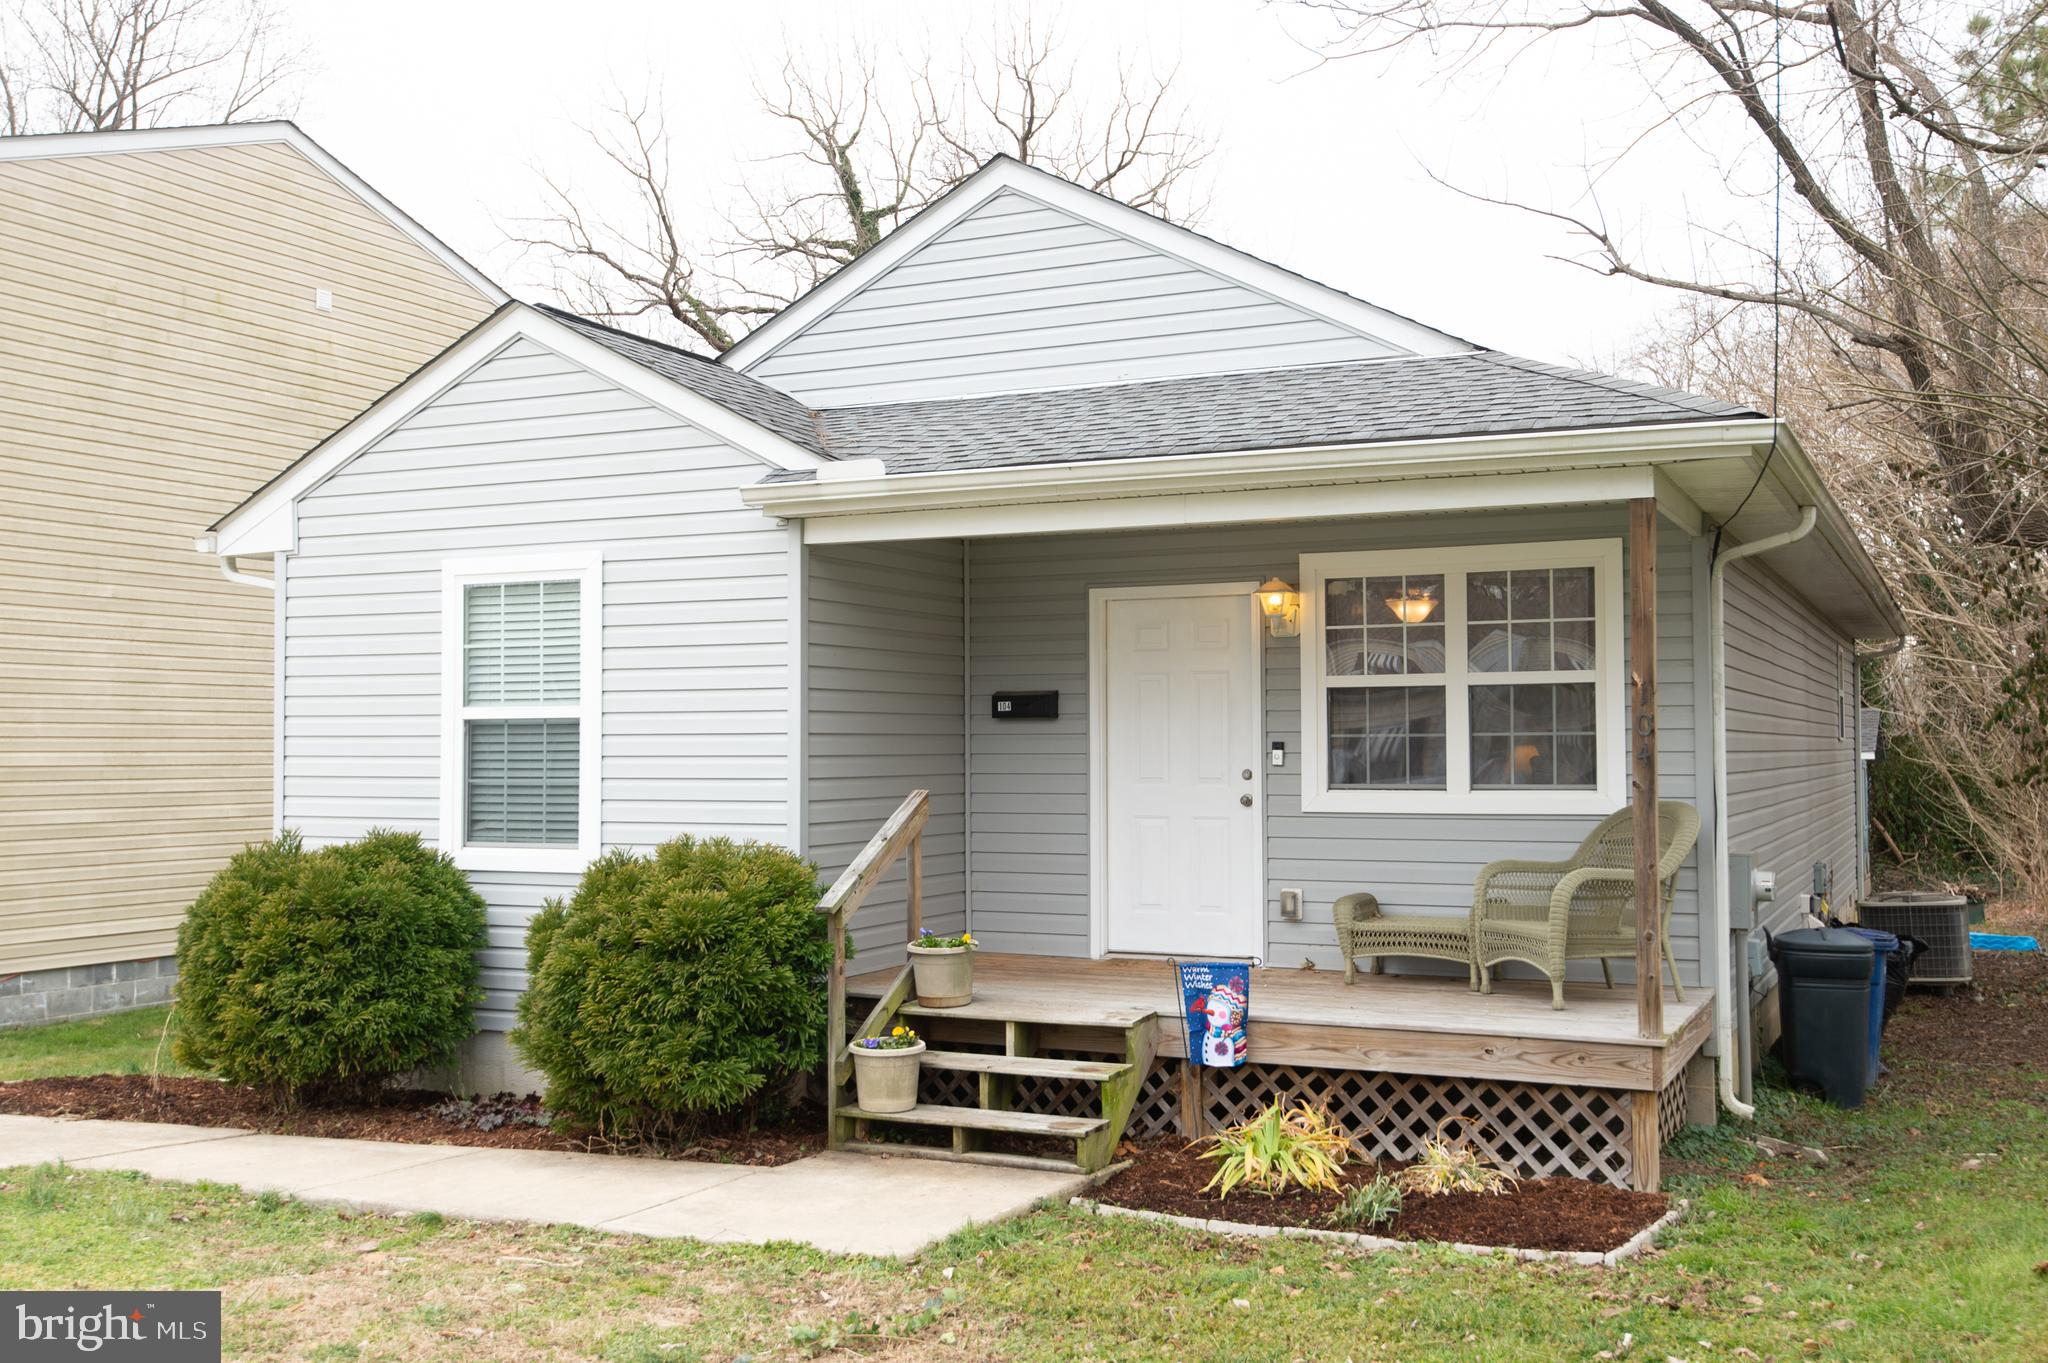 Adorable rancher built in 2012 right in the heart of Centreville. Great layout with 3 bedrooms and 2